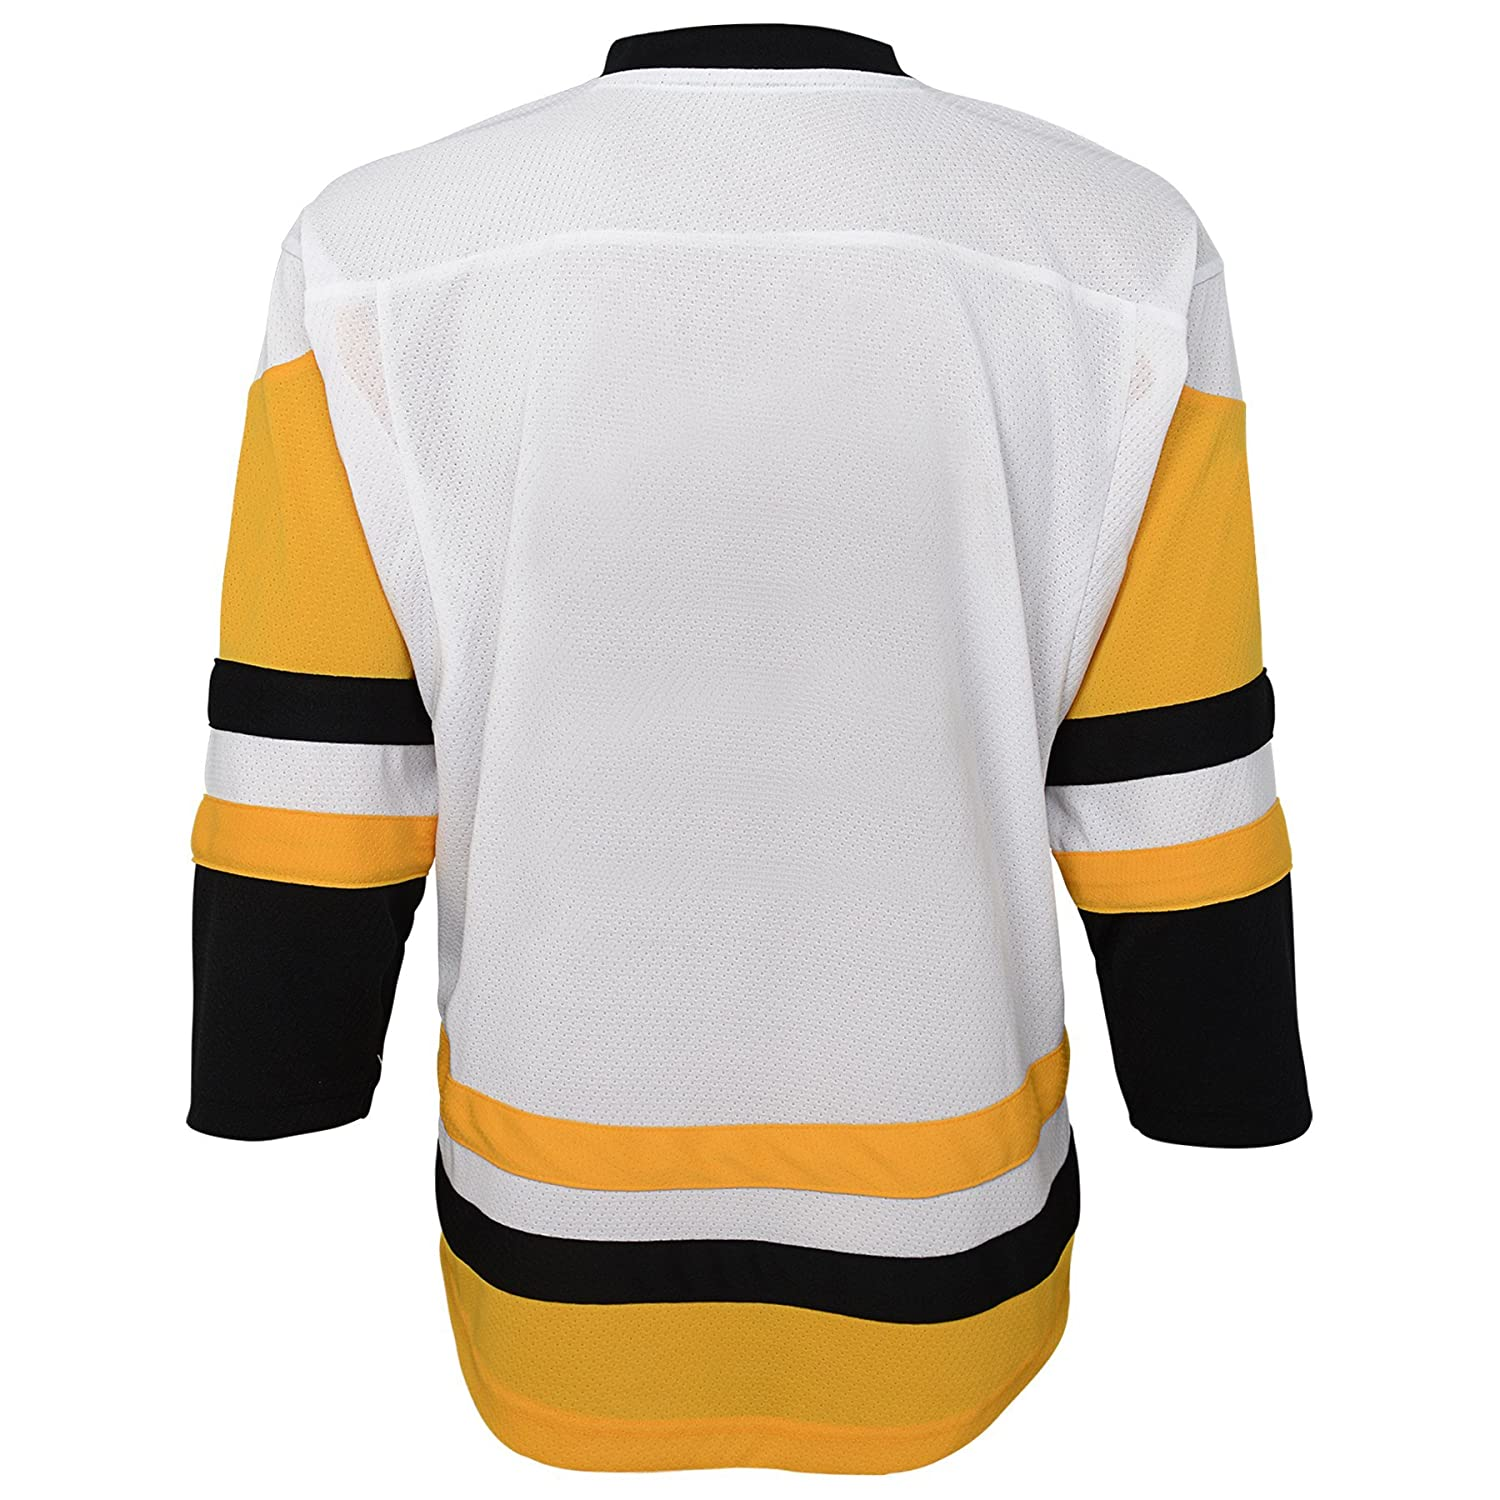 White NHL Pittsburgh Penguins Youth Outerstuff Replica Jersey-Away 12-14 Youth Large